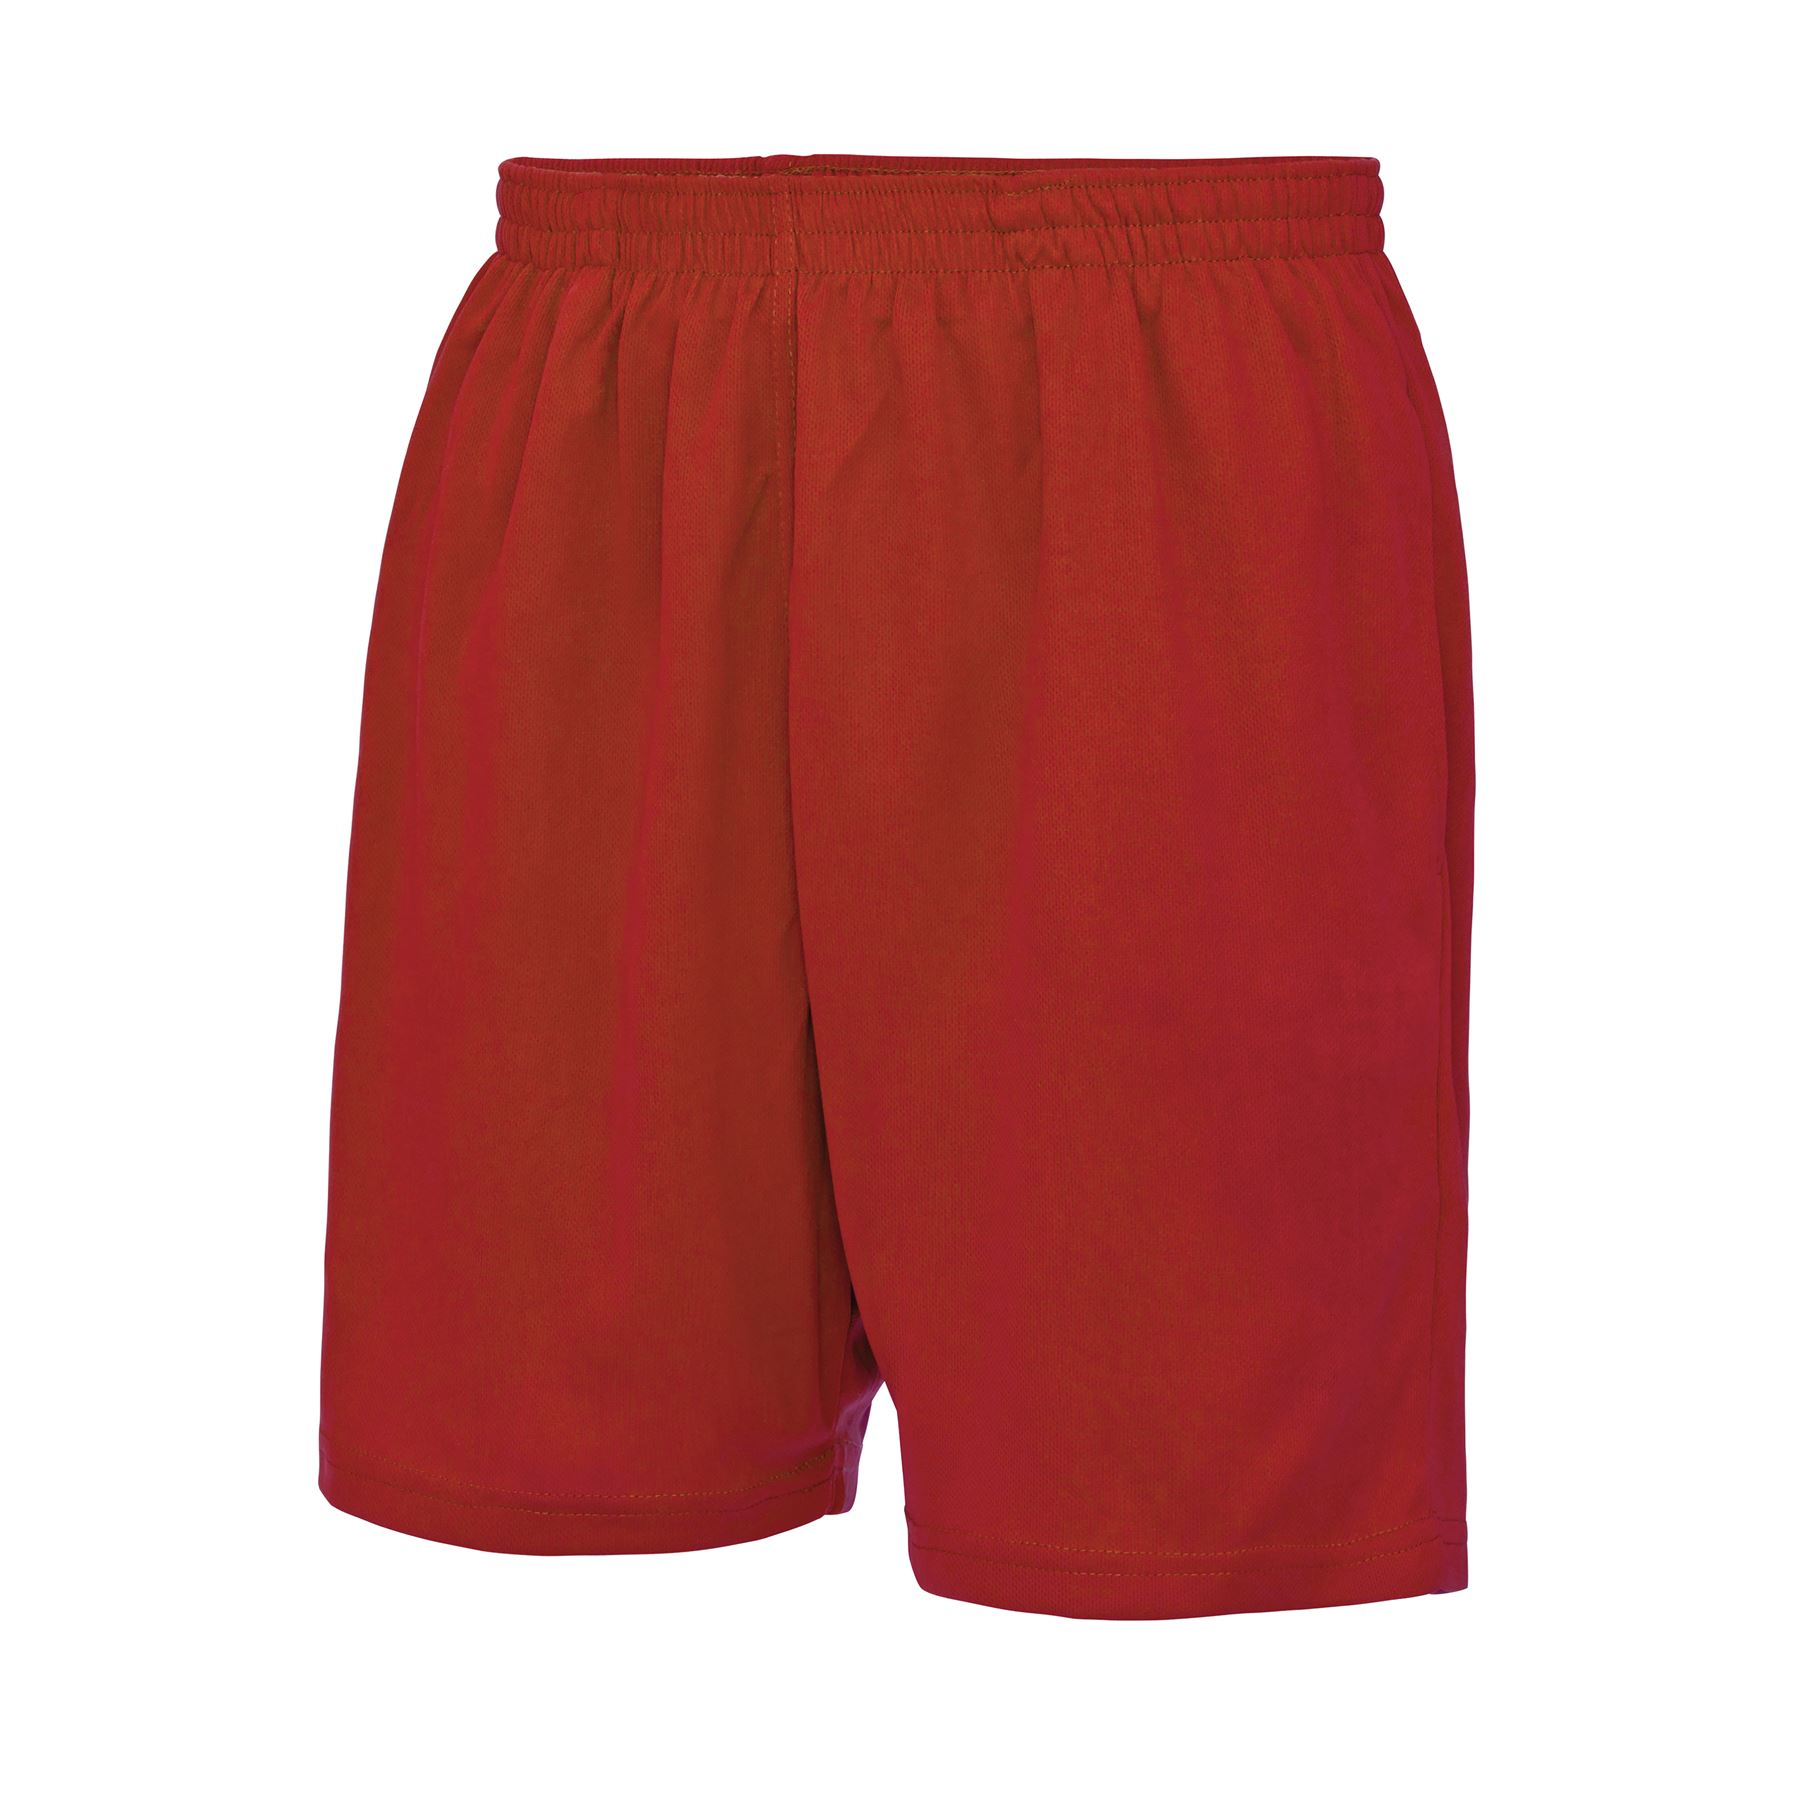 Board shorts are an essential wardrobe item wherever there is water and fun. The best board shorts should blend in with any vibe, from the pool, to the lake, to the beach. Buy the Alki'i Men.